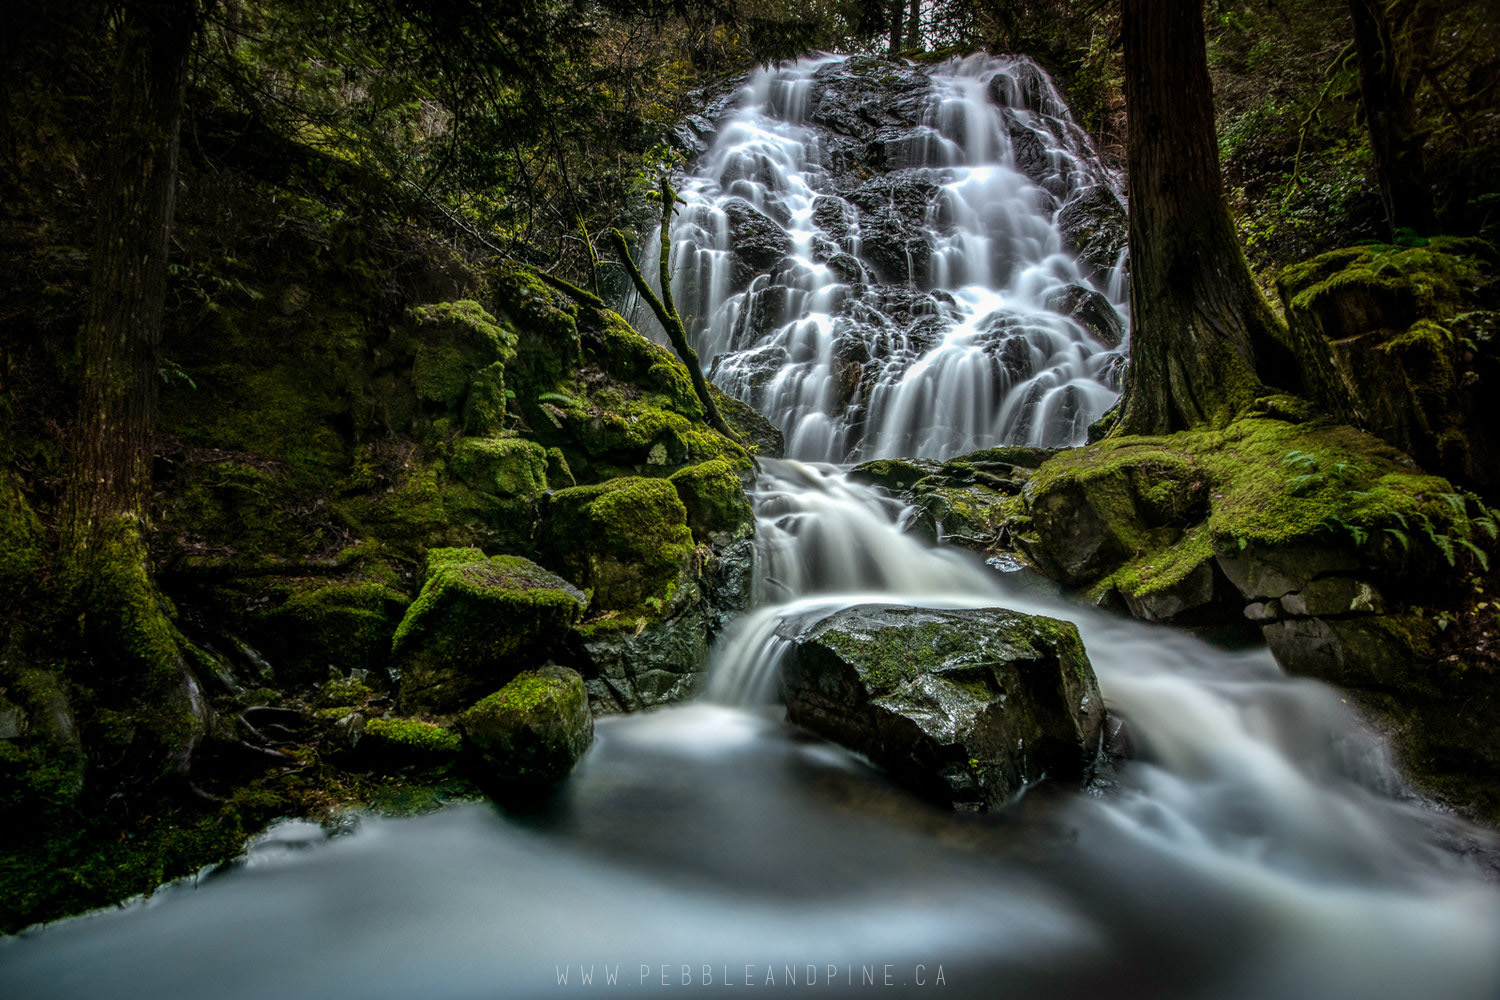 Maryvine Falls in Sooke BC //  Captured by Sayde